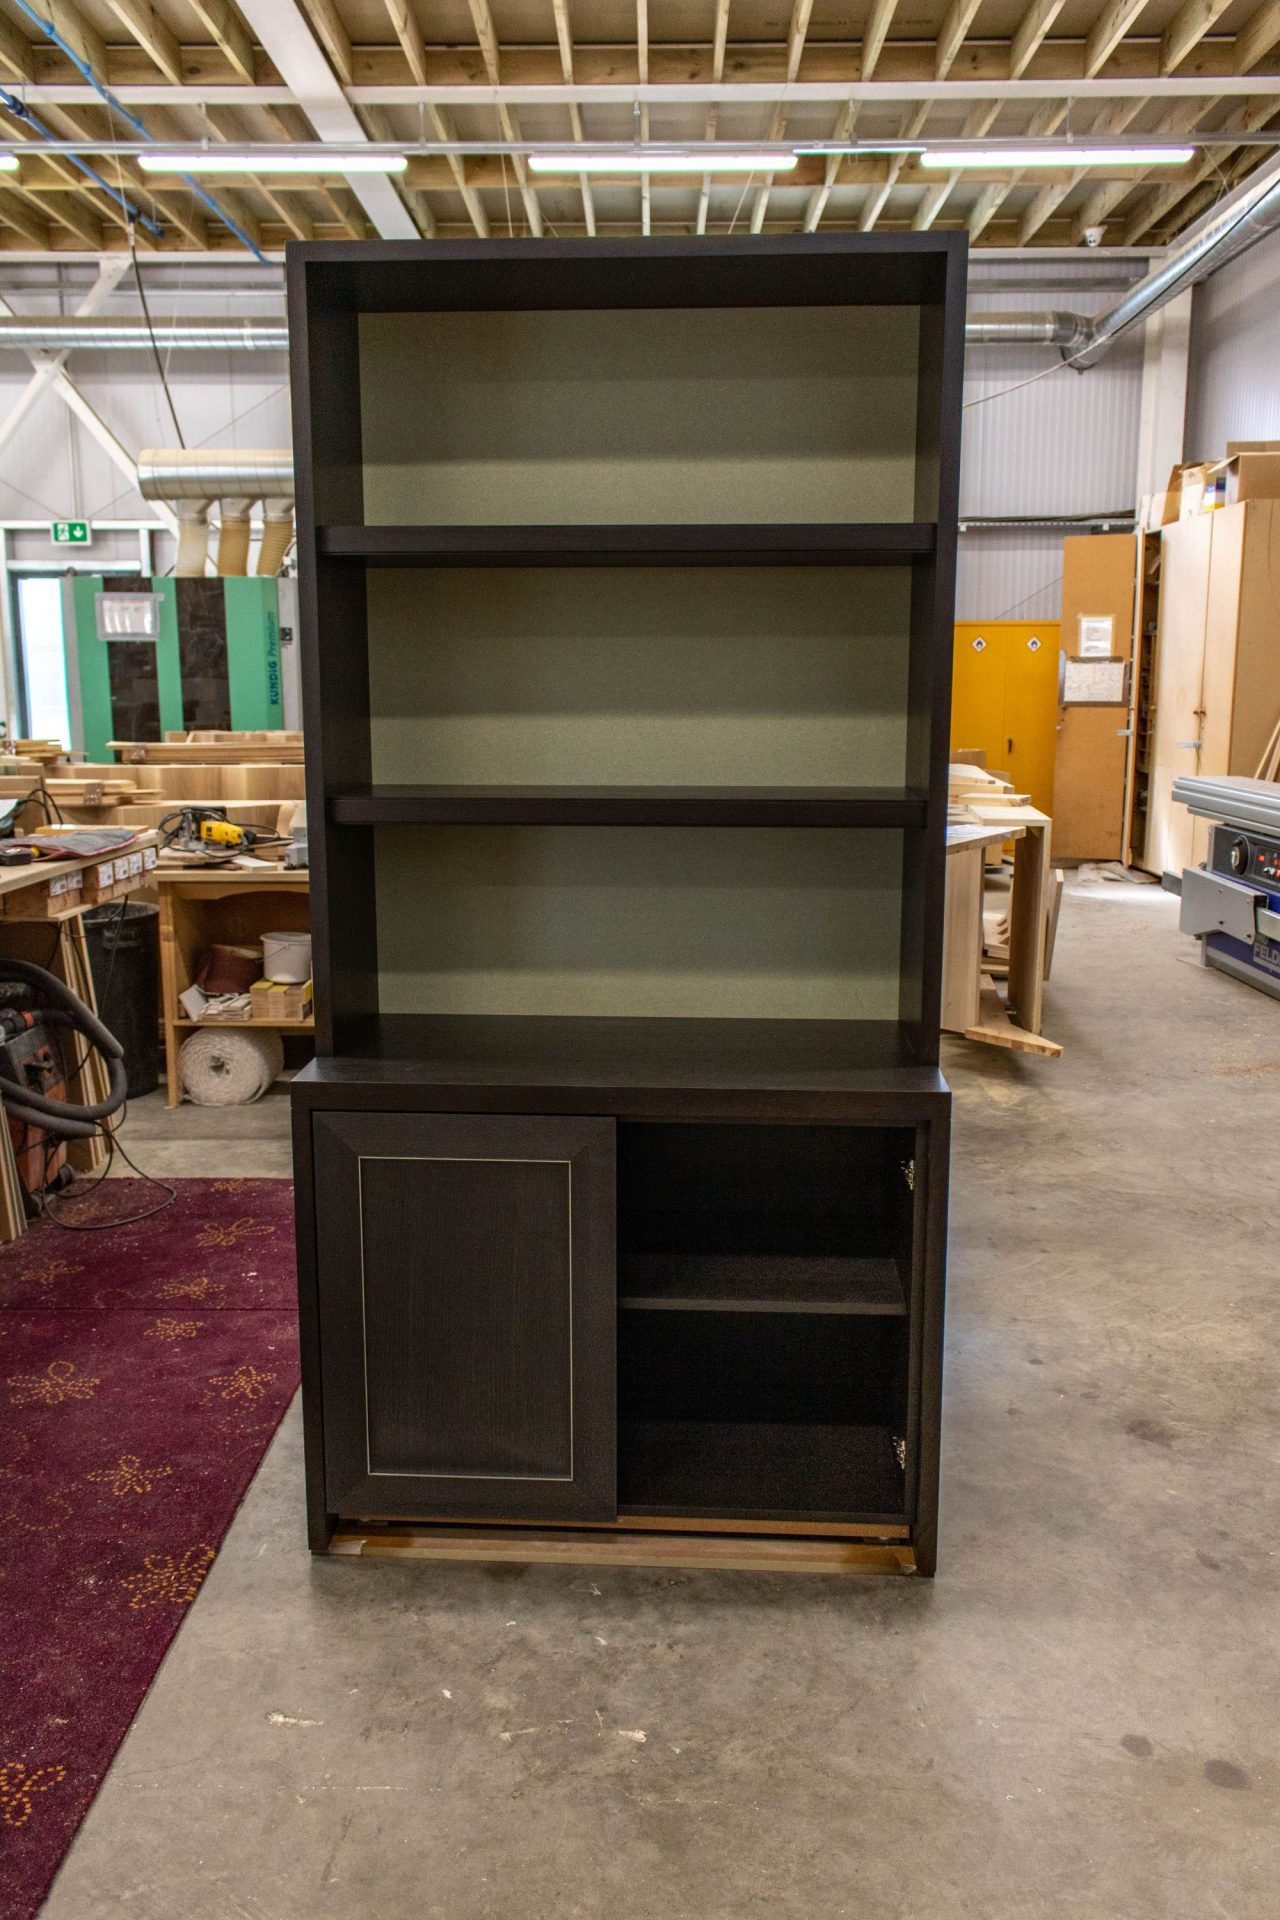 Kandd Black shelves wardrobe